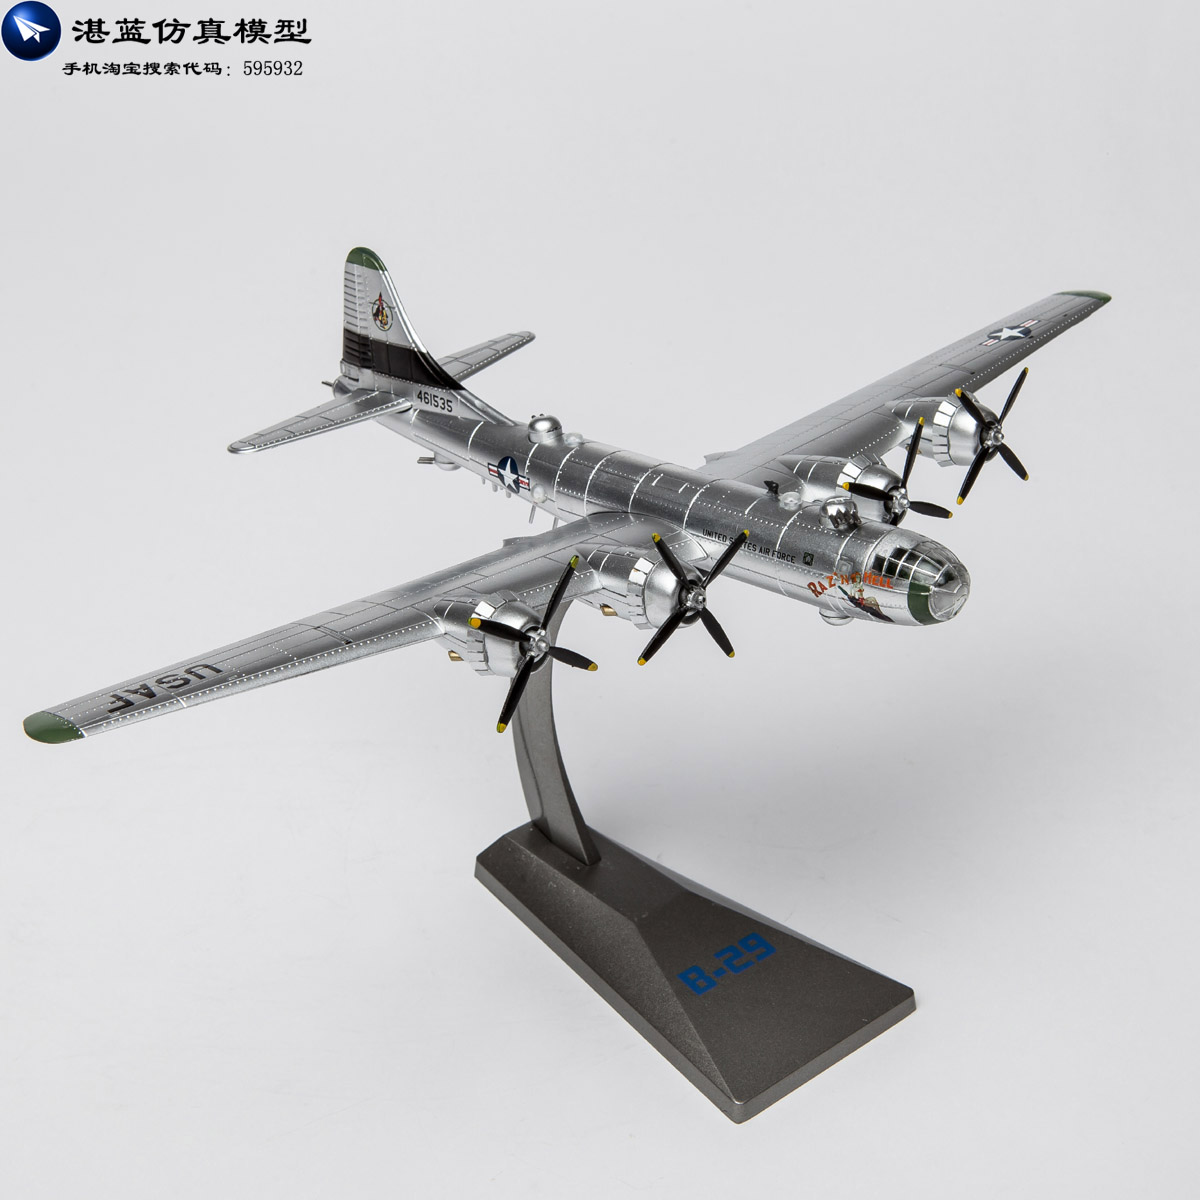 Brand New 1/144 Scale Plane Model Toys World War II Boeing B-29 Strategic Bomber Diecast Metal Airplane Model Toy For Collection world war 1